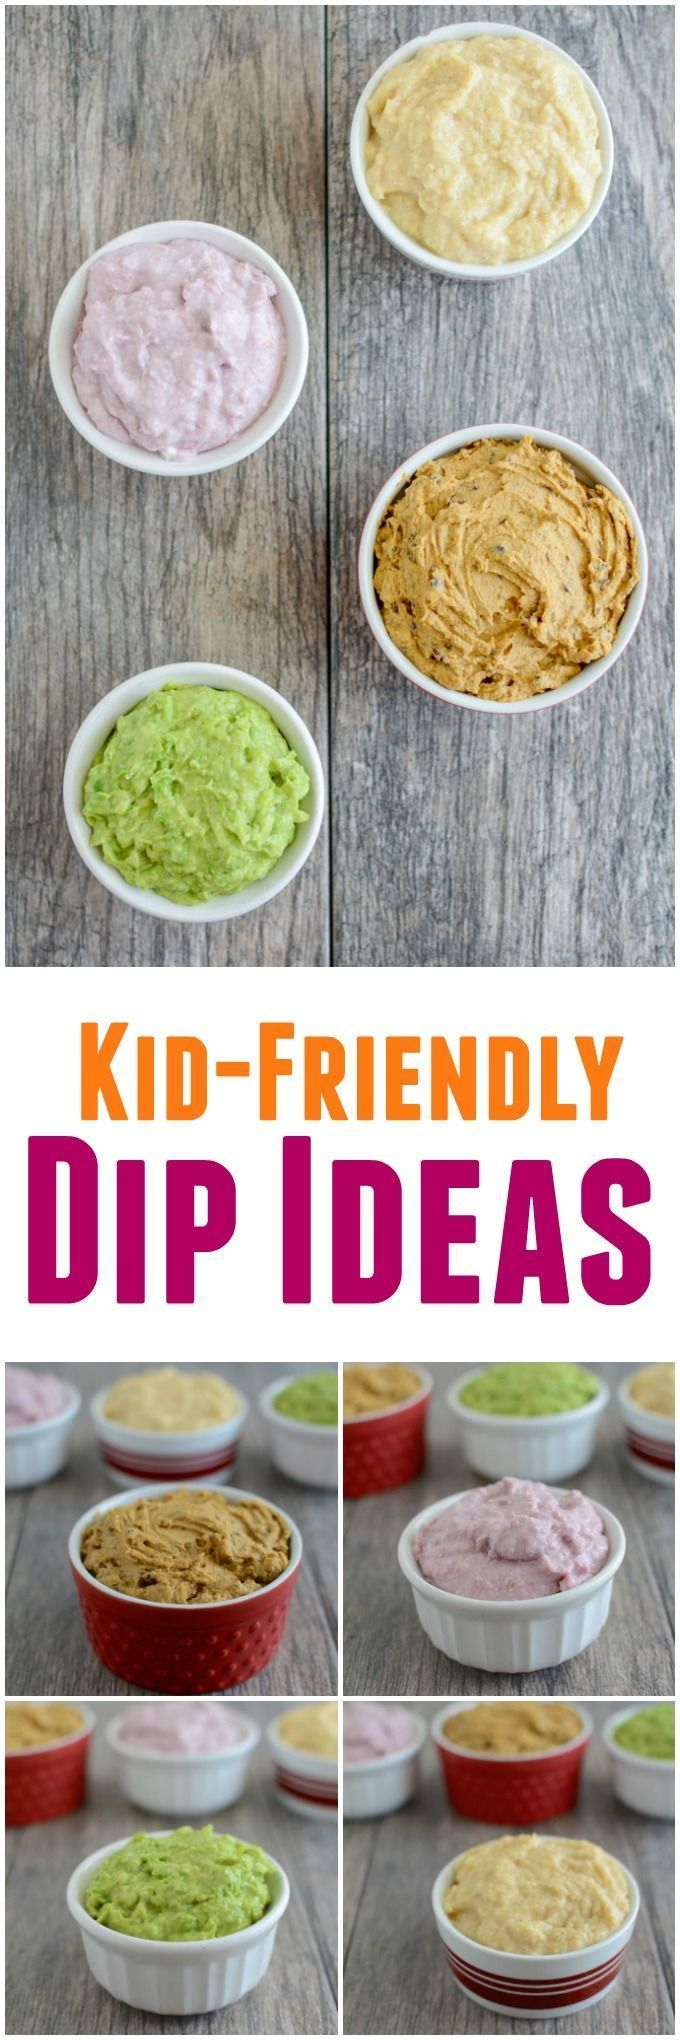 4 Kid-Friendly Dips - Life with Kami -